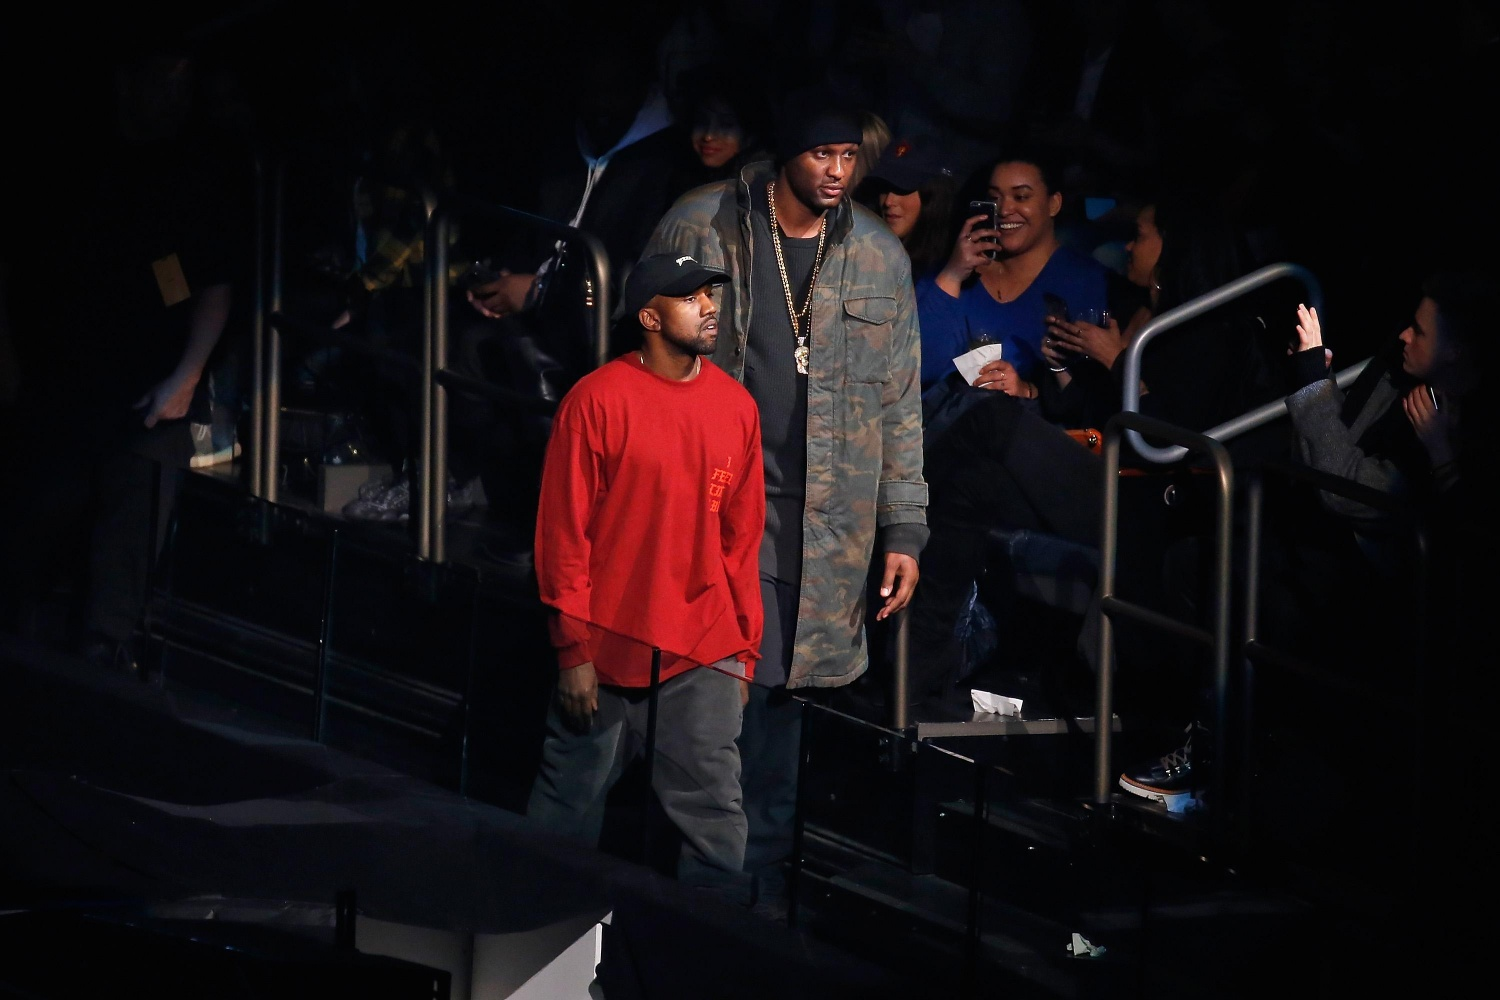 Lamar Odom says onstage moment with Kanye West was 'worth it'